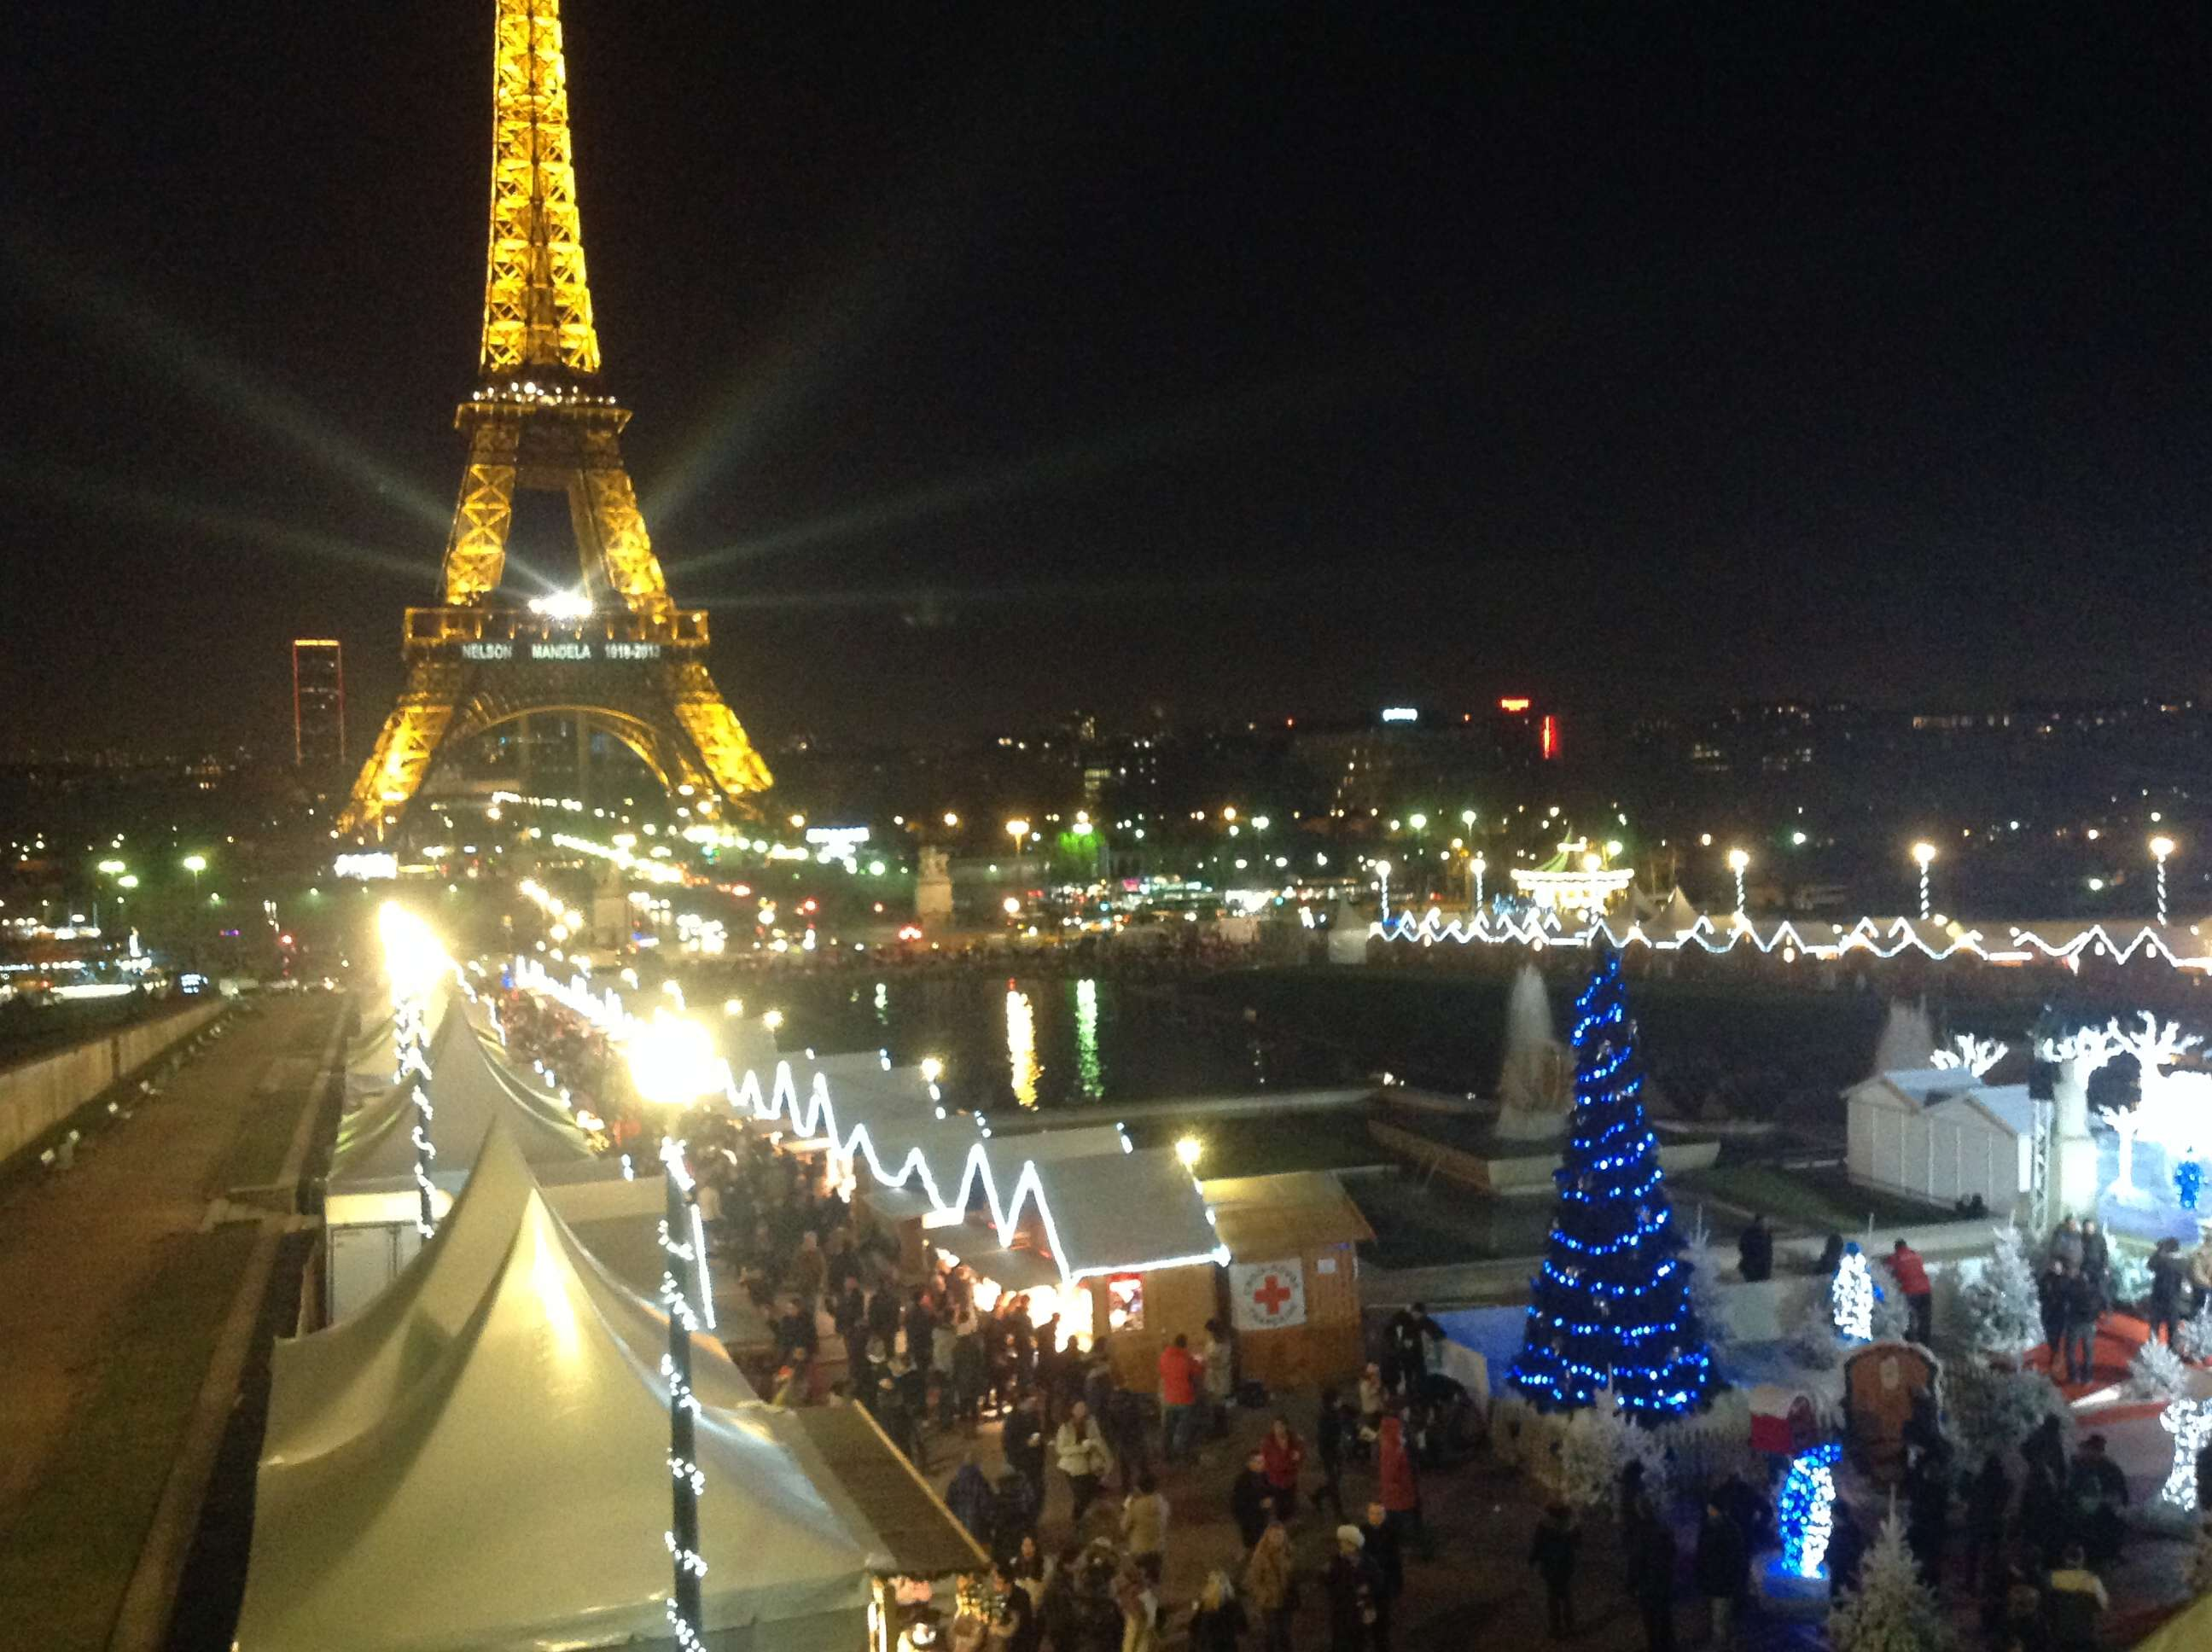 Natale all'estero. Parigi all'insegna di shopping, luminarie e angoli suggestivi - triestini nel ...